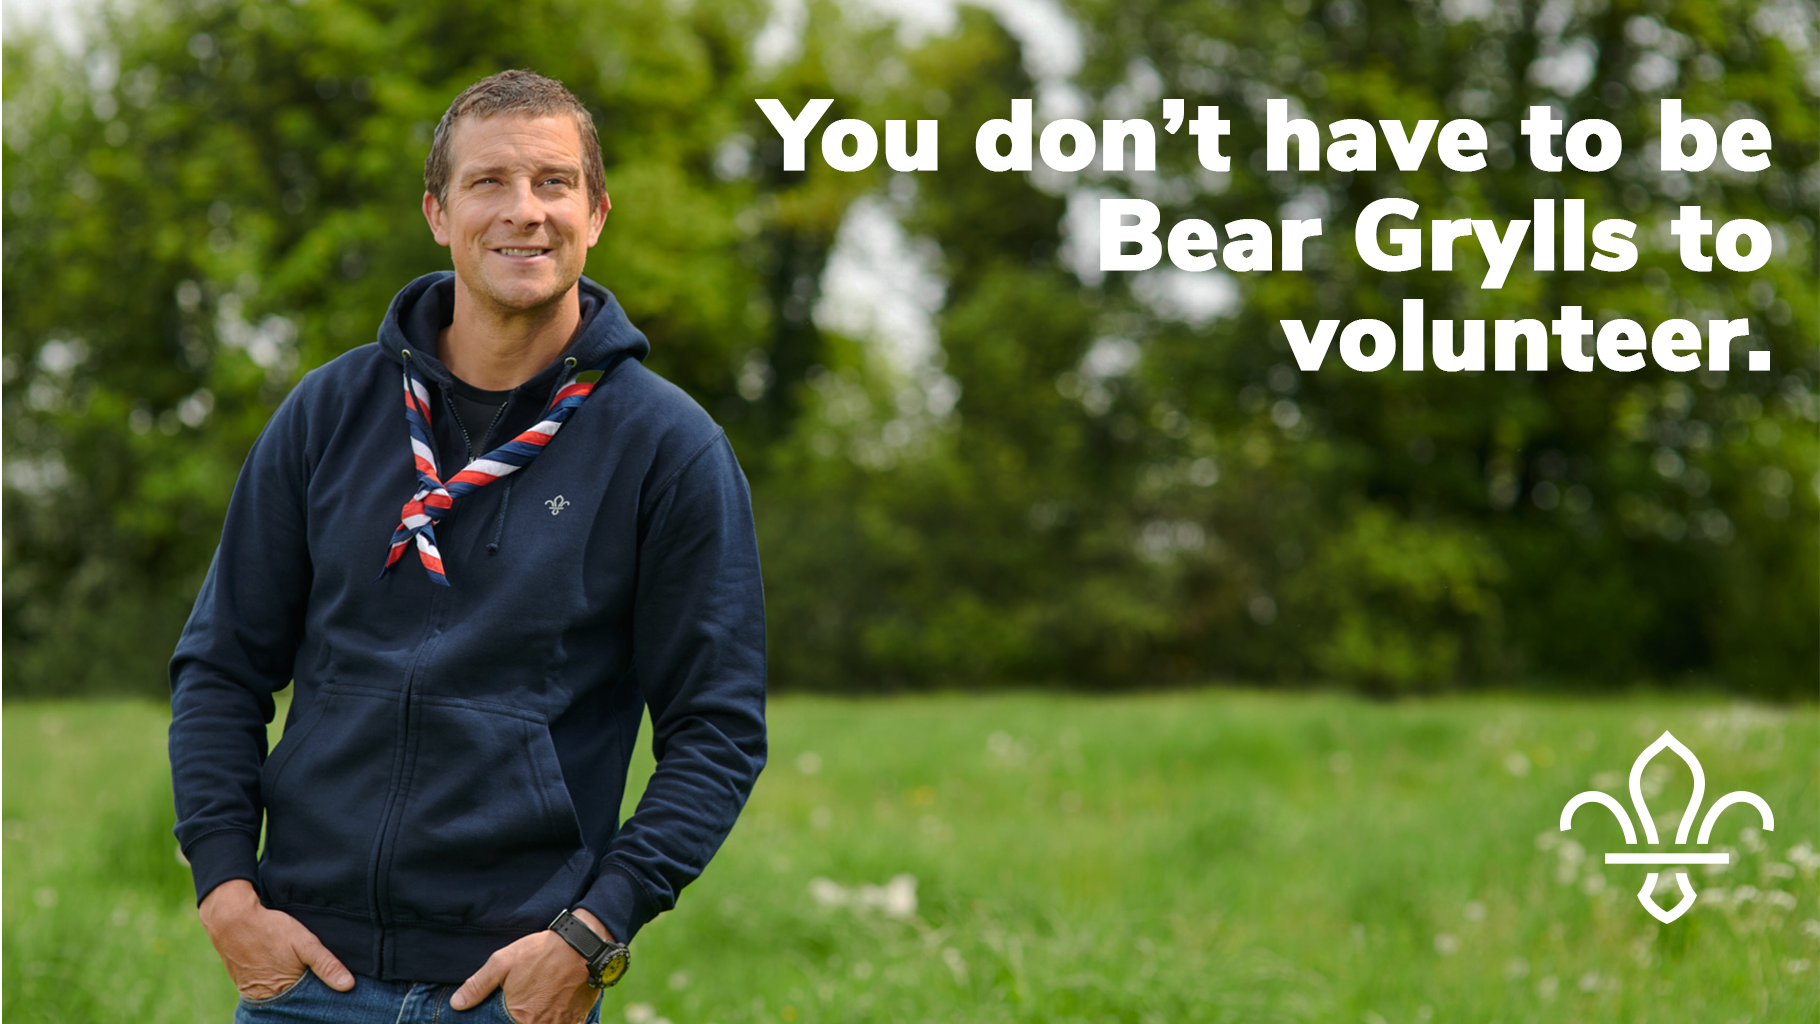 #GoodForYou – A message from Bear Grylls